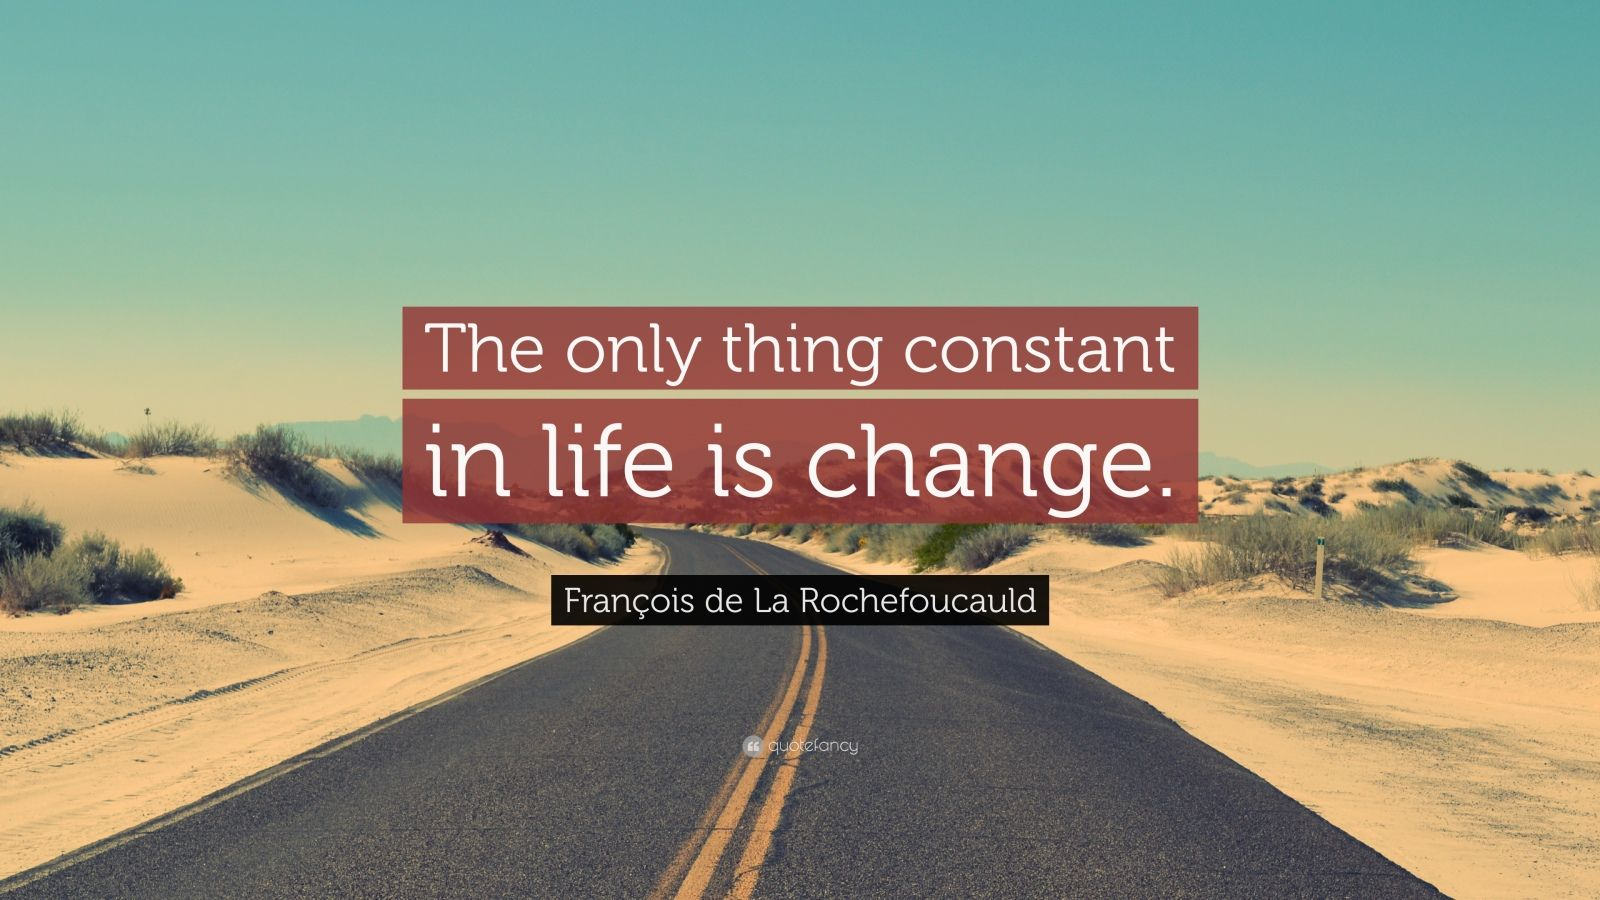 """François de La Rochefoucauld Quote: """"The only thing constant in life is change."""""""